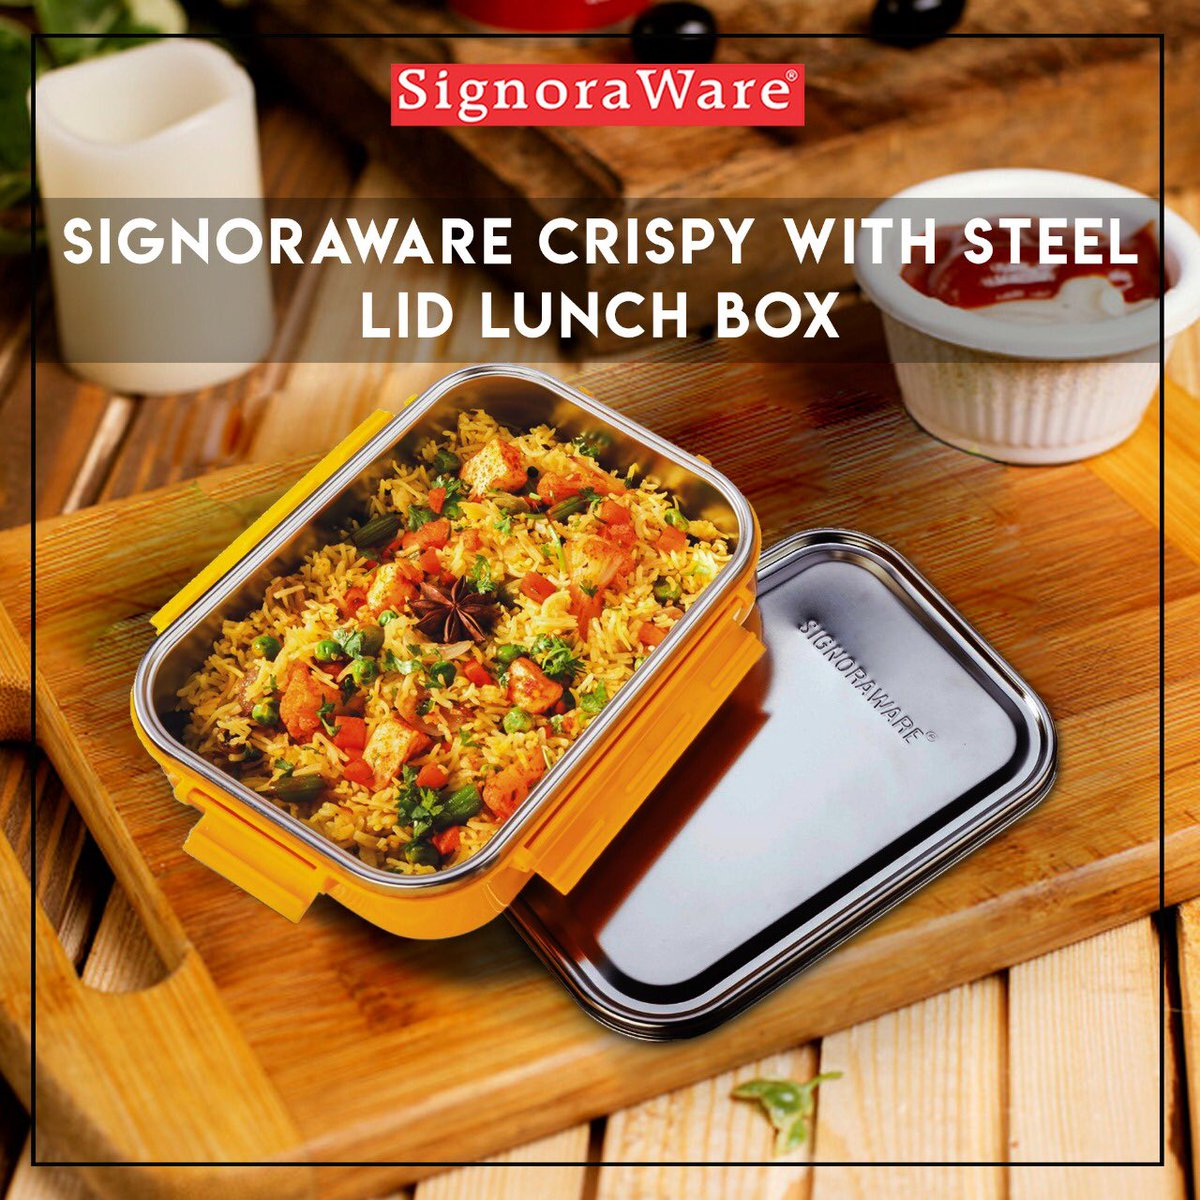 #NewProduct Be the first ones to grab the latest Signoraware products! Shop now at https://amzn.to/2LRIhvQ #new #newlaunch #newproduct #kitchen #kitchenproducts #designerkitchen #kitchendecor #usefulproducts #shop #shopnow #onlineshopping #onlineshop #budgetfriendly #designerpic.twitter.com/cF3NCekUwi